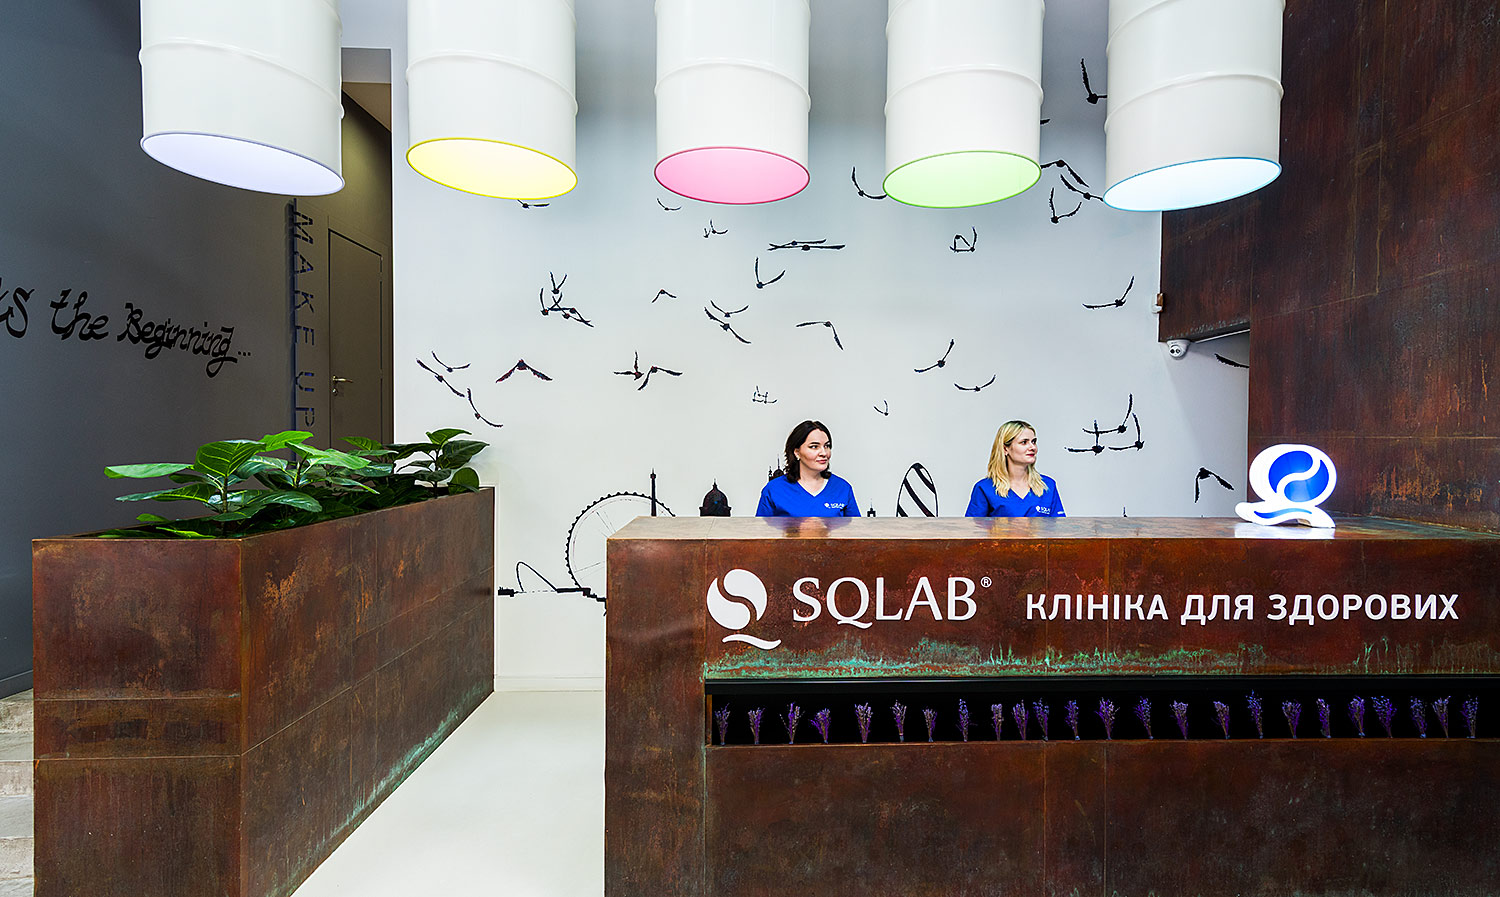 A branded reception desk and a lamp in the shape of a logo. SQLAB is a clinic for healthy people.